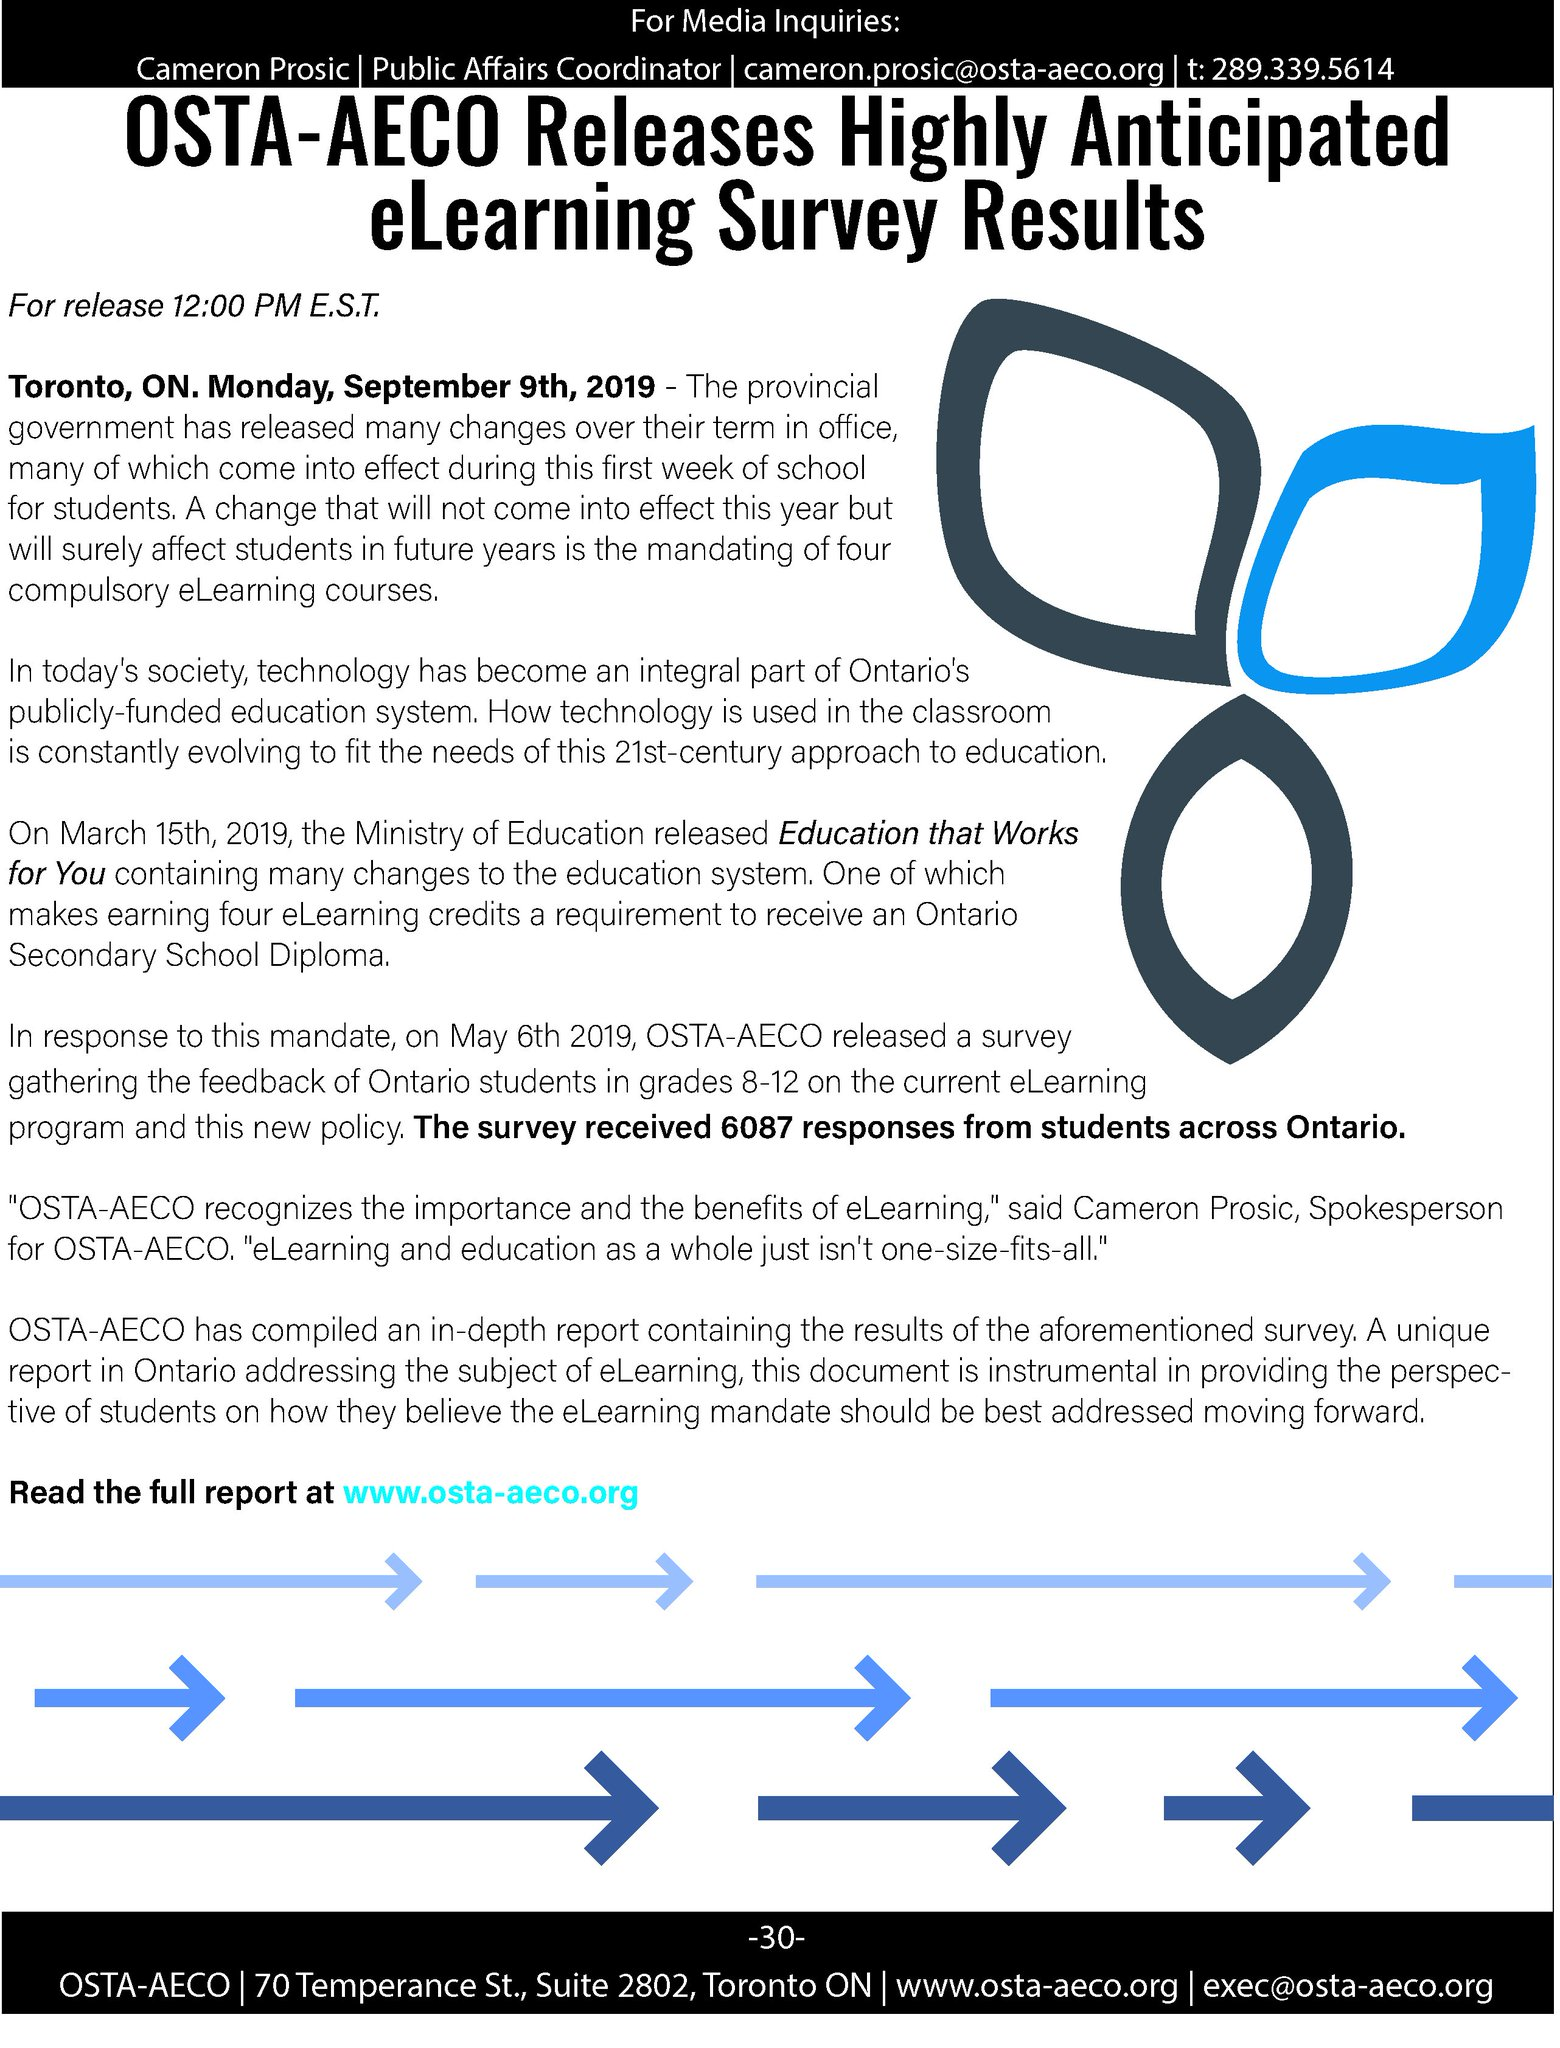 OSTA-AECO releases highly anticipated e-learning survey results press release